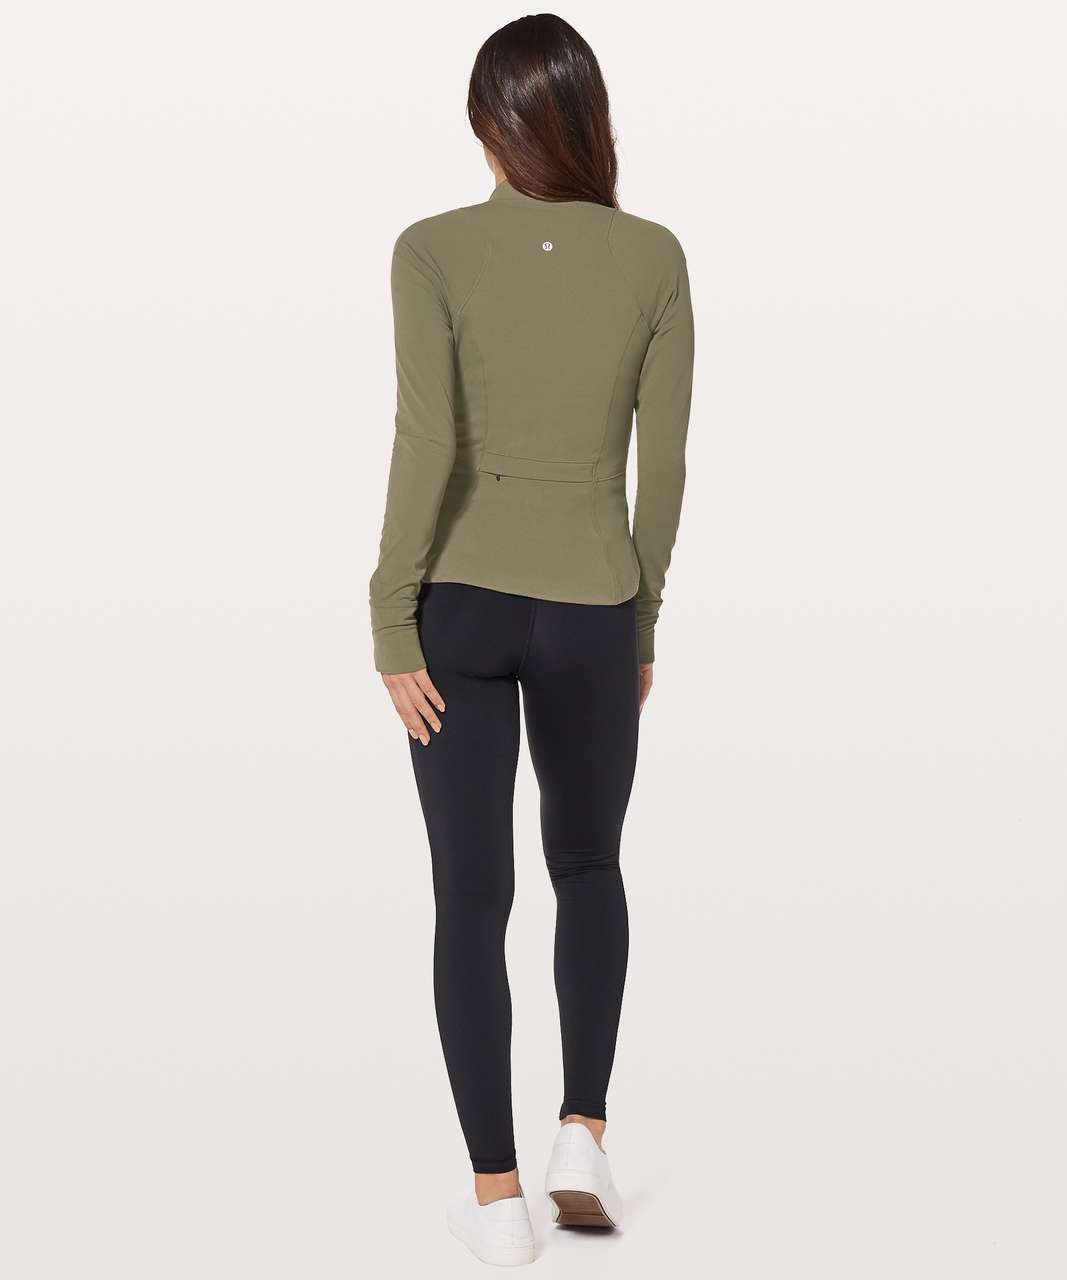 Lululemon The Ease Jacket - Sage